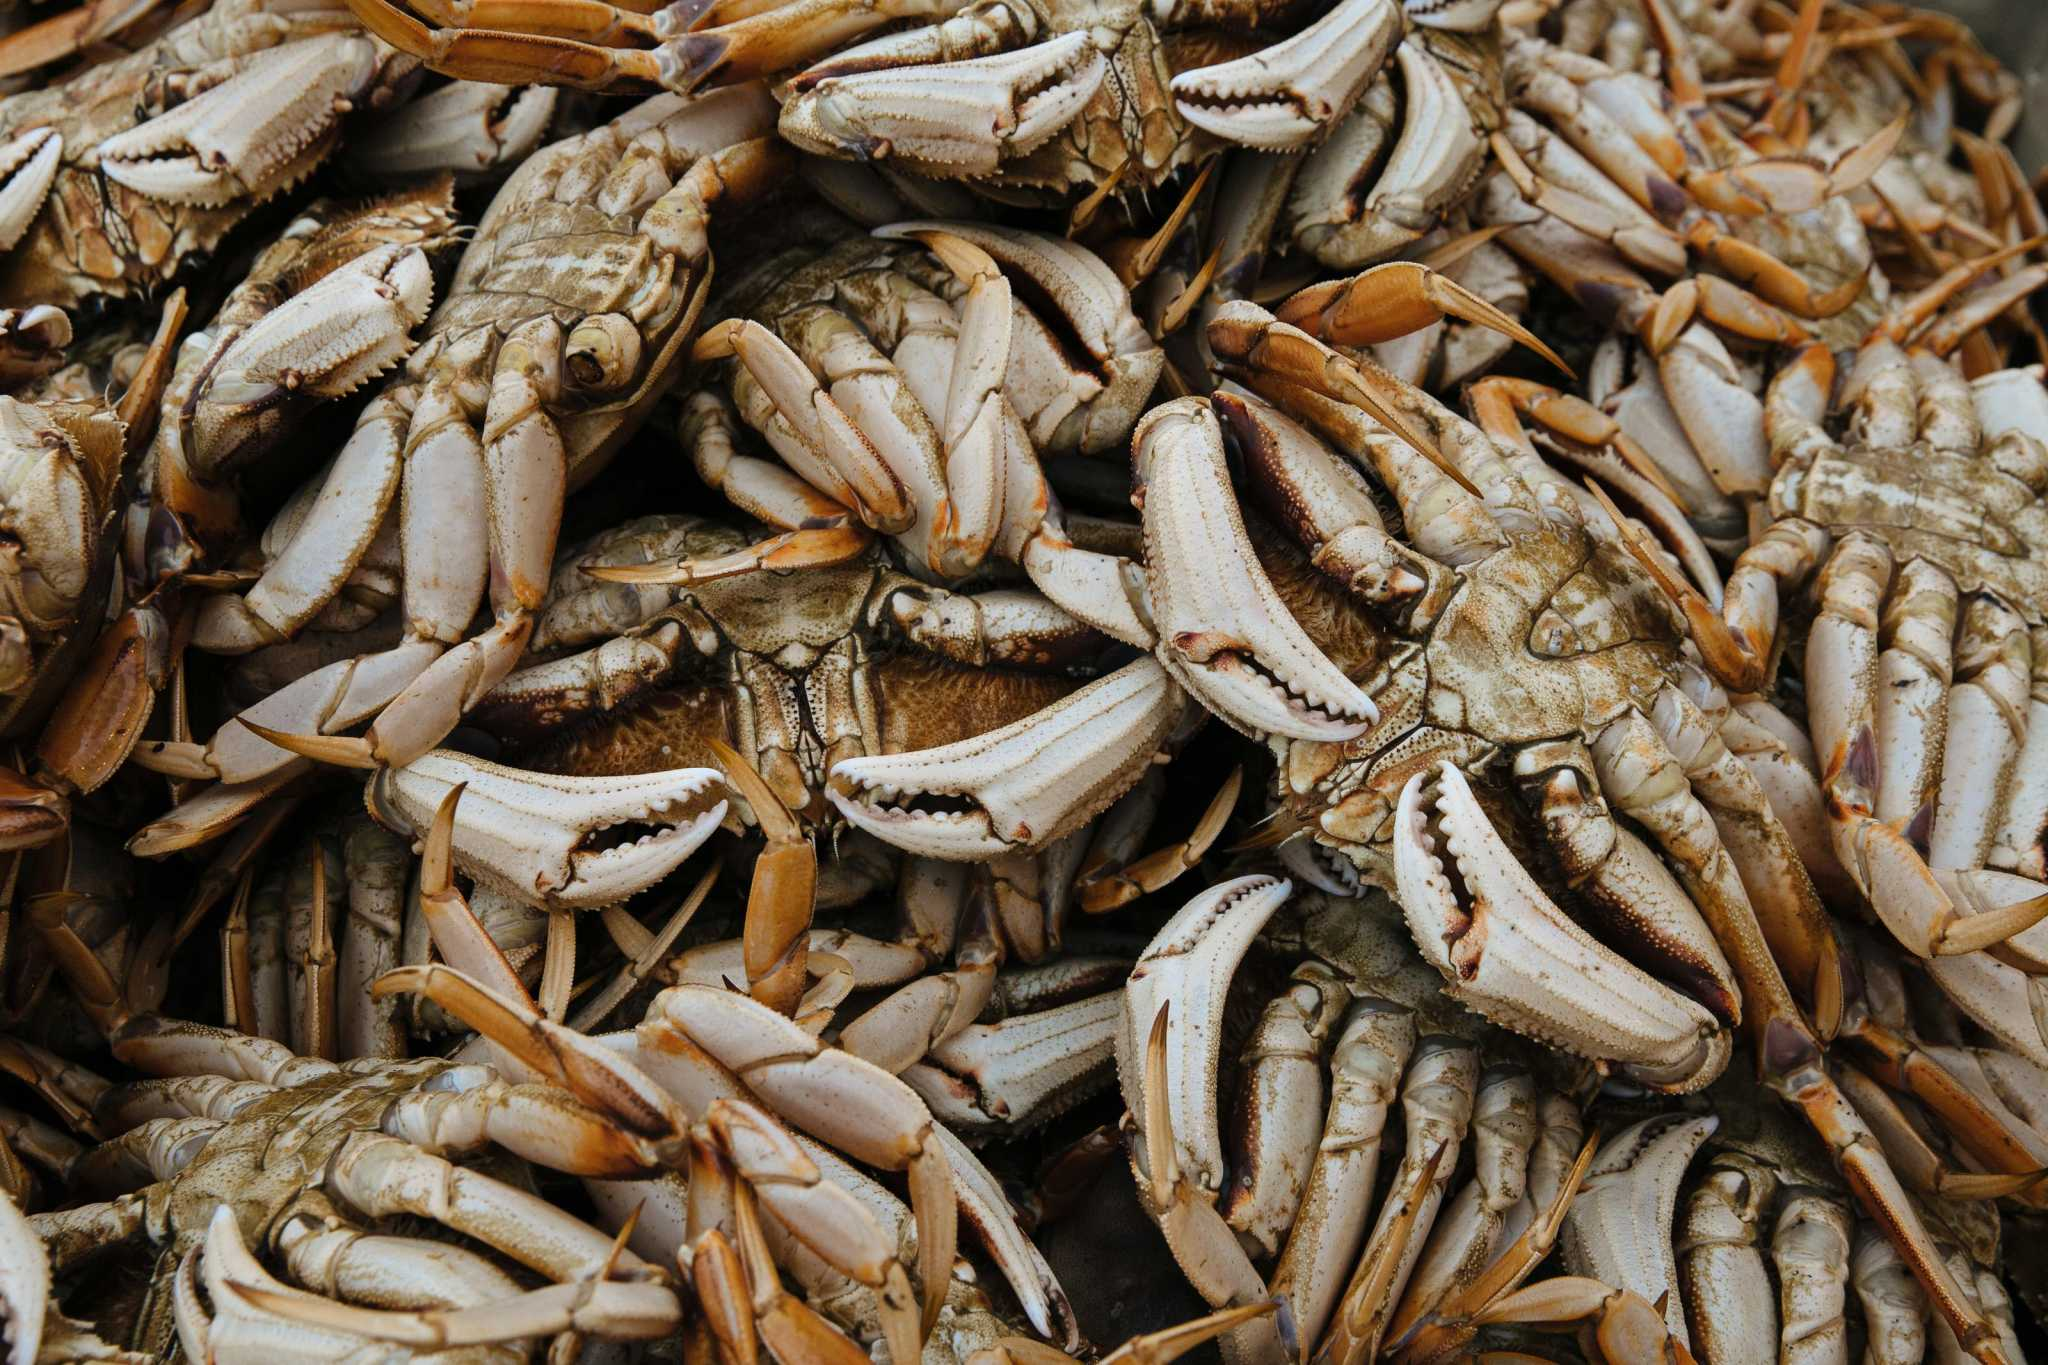 Dungeness crab season delayed from Mendocino north because of poor quality